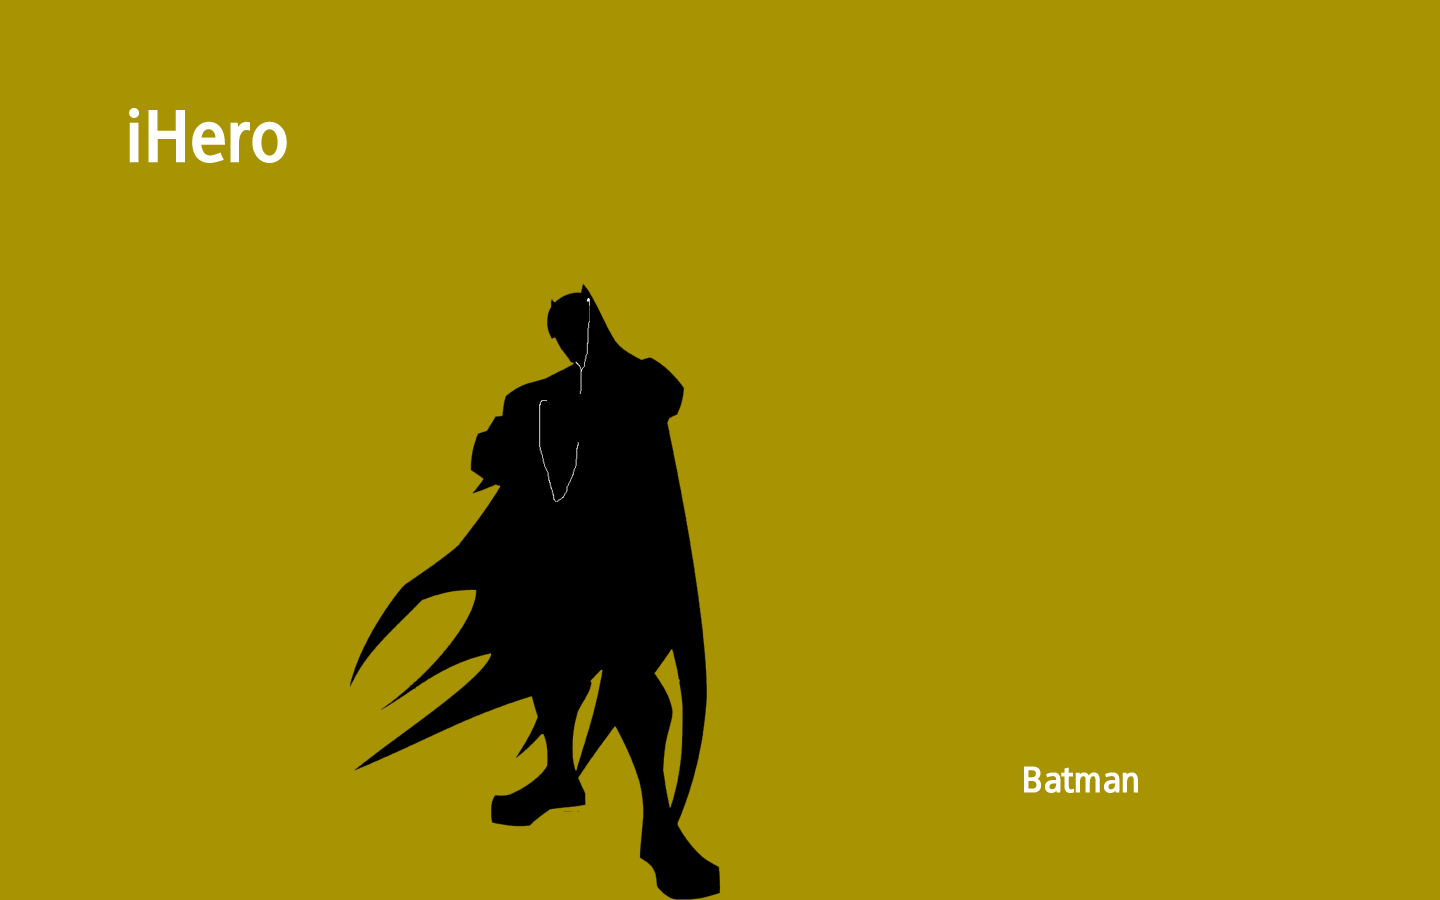 Batman ipod Wallpaper Vector